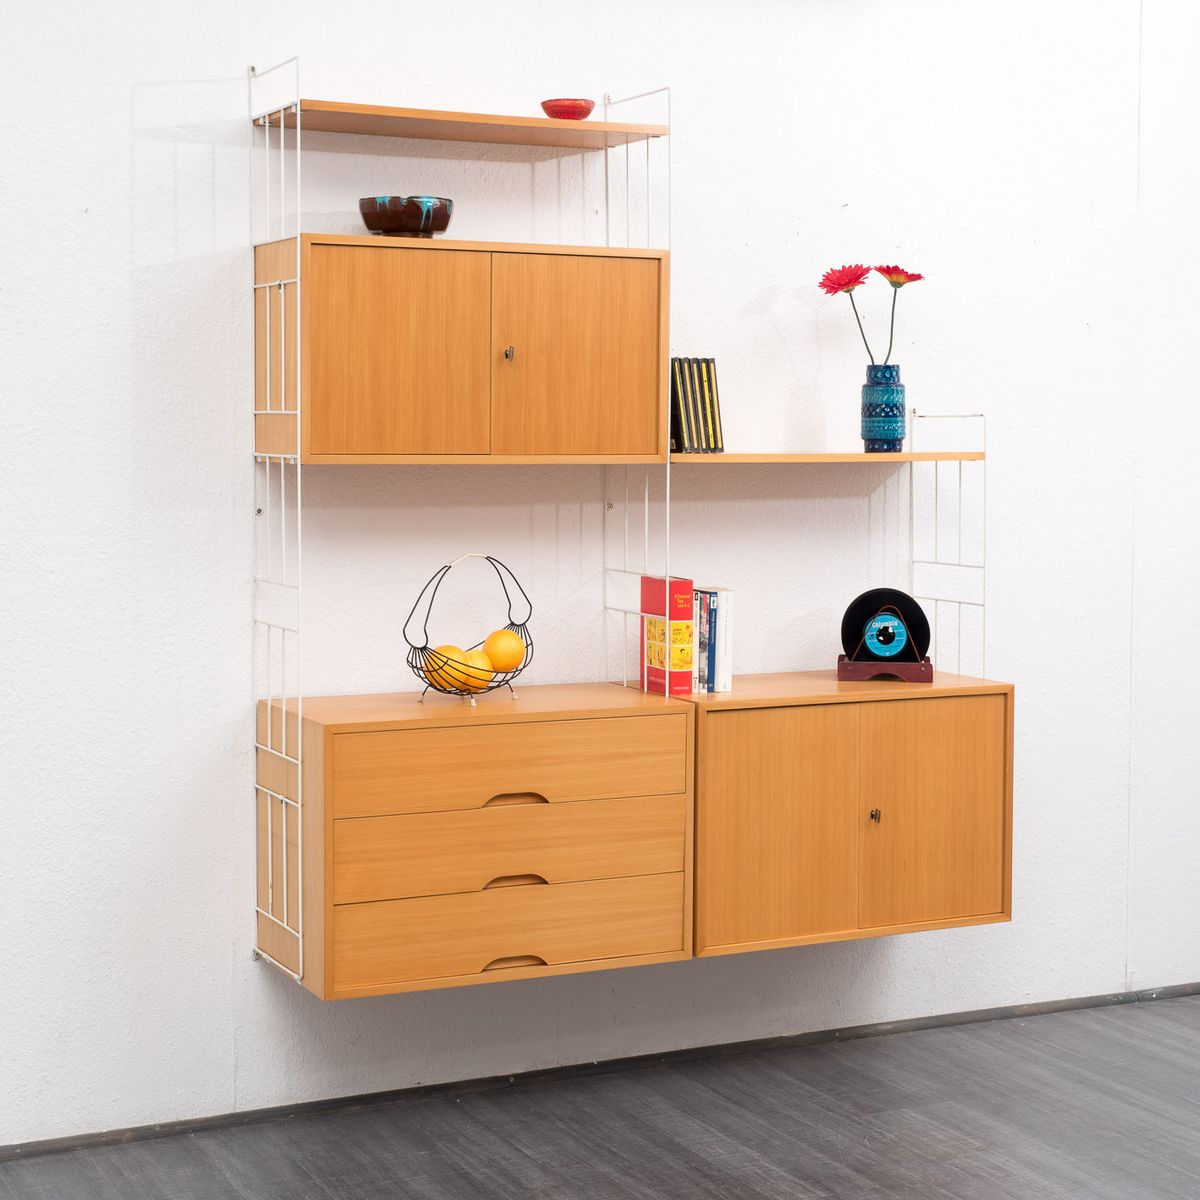 Vintage Ash Modular Shelving System from WHB for sale at Pamono